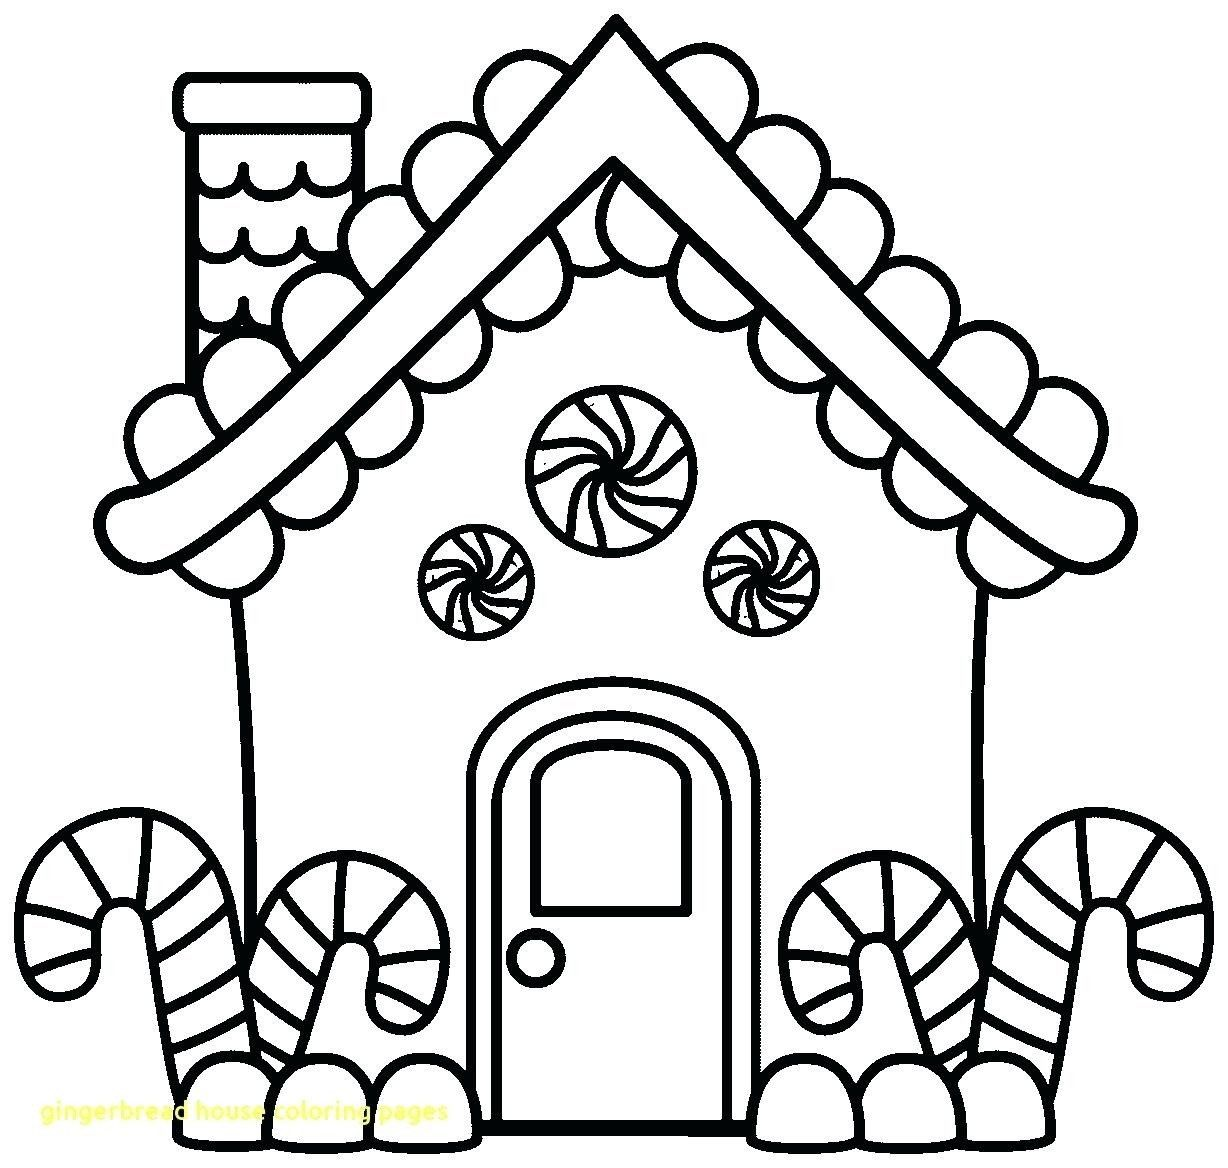 Gingerbread House Coloring Page New Blank Gingerbread ...